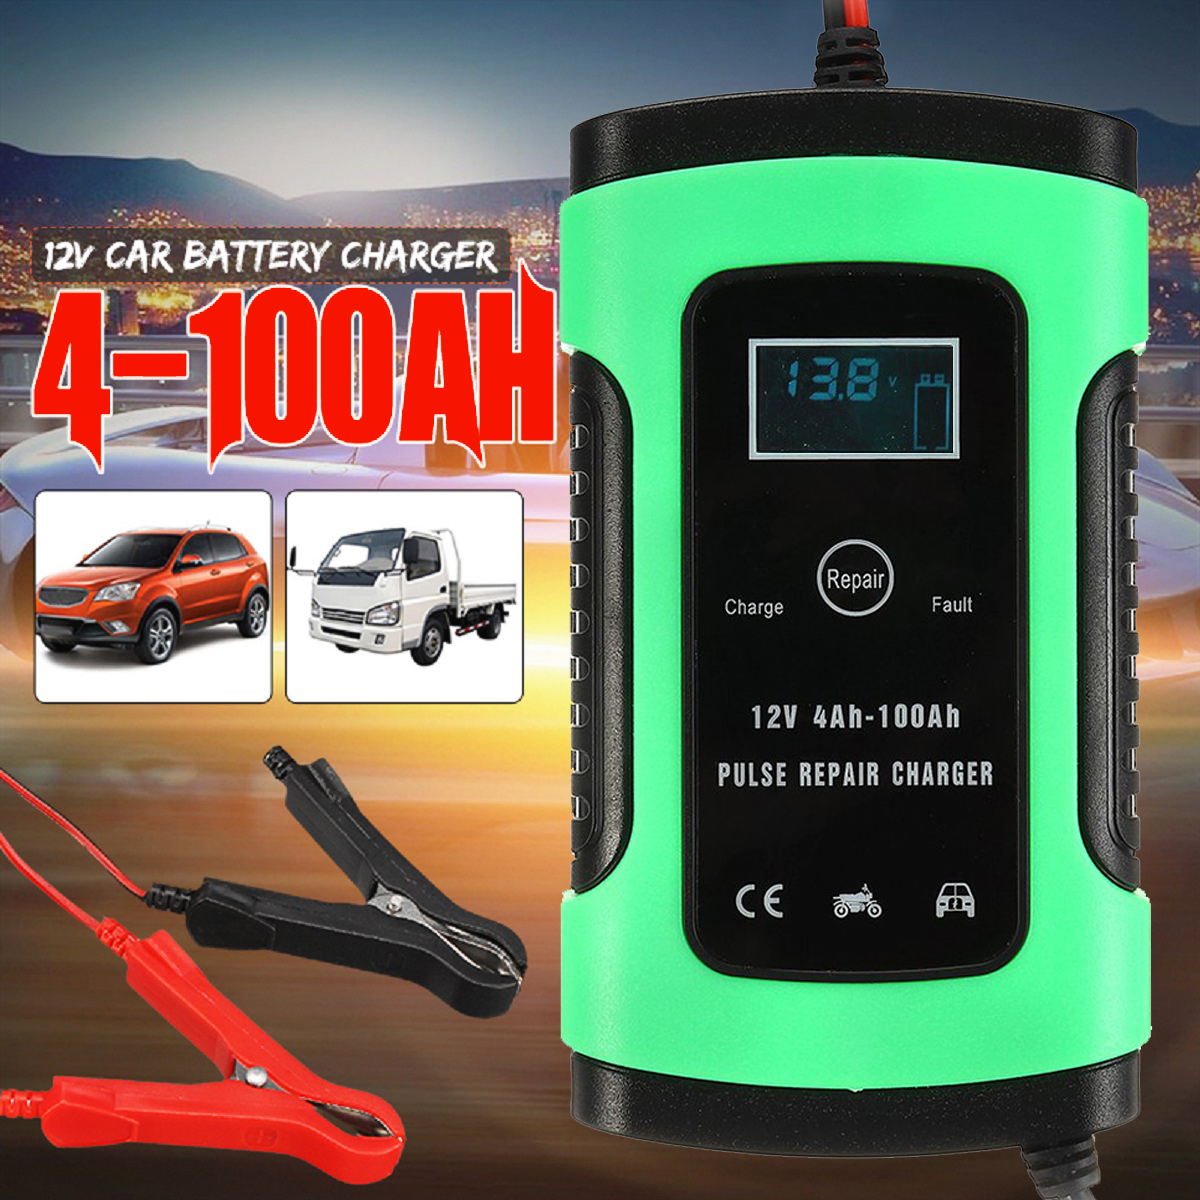 Car-Intelligent-Battery-Charger Jump-Starter Auto 12V 5A LCD 100-240V Pulse Repair-Type title=